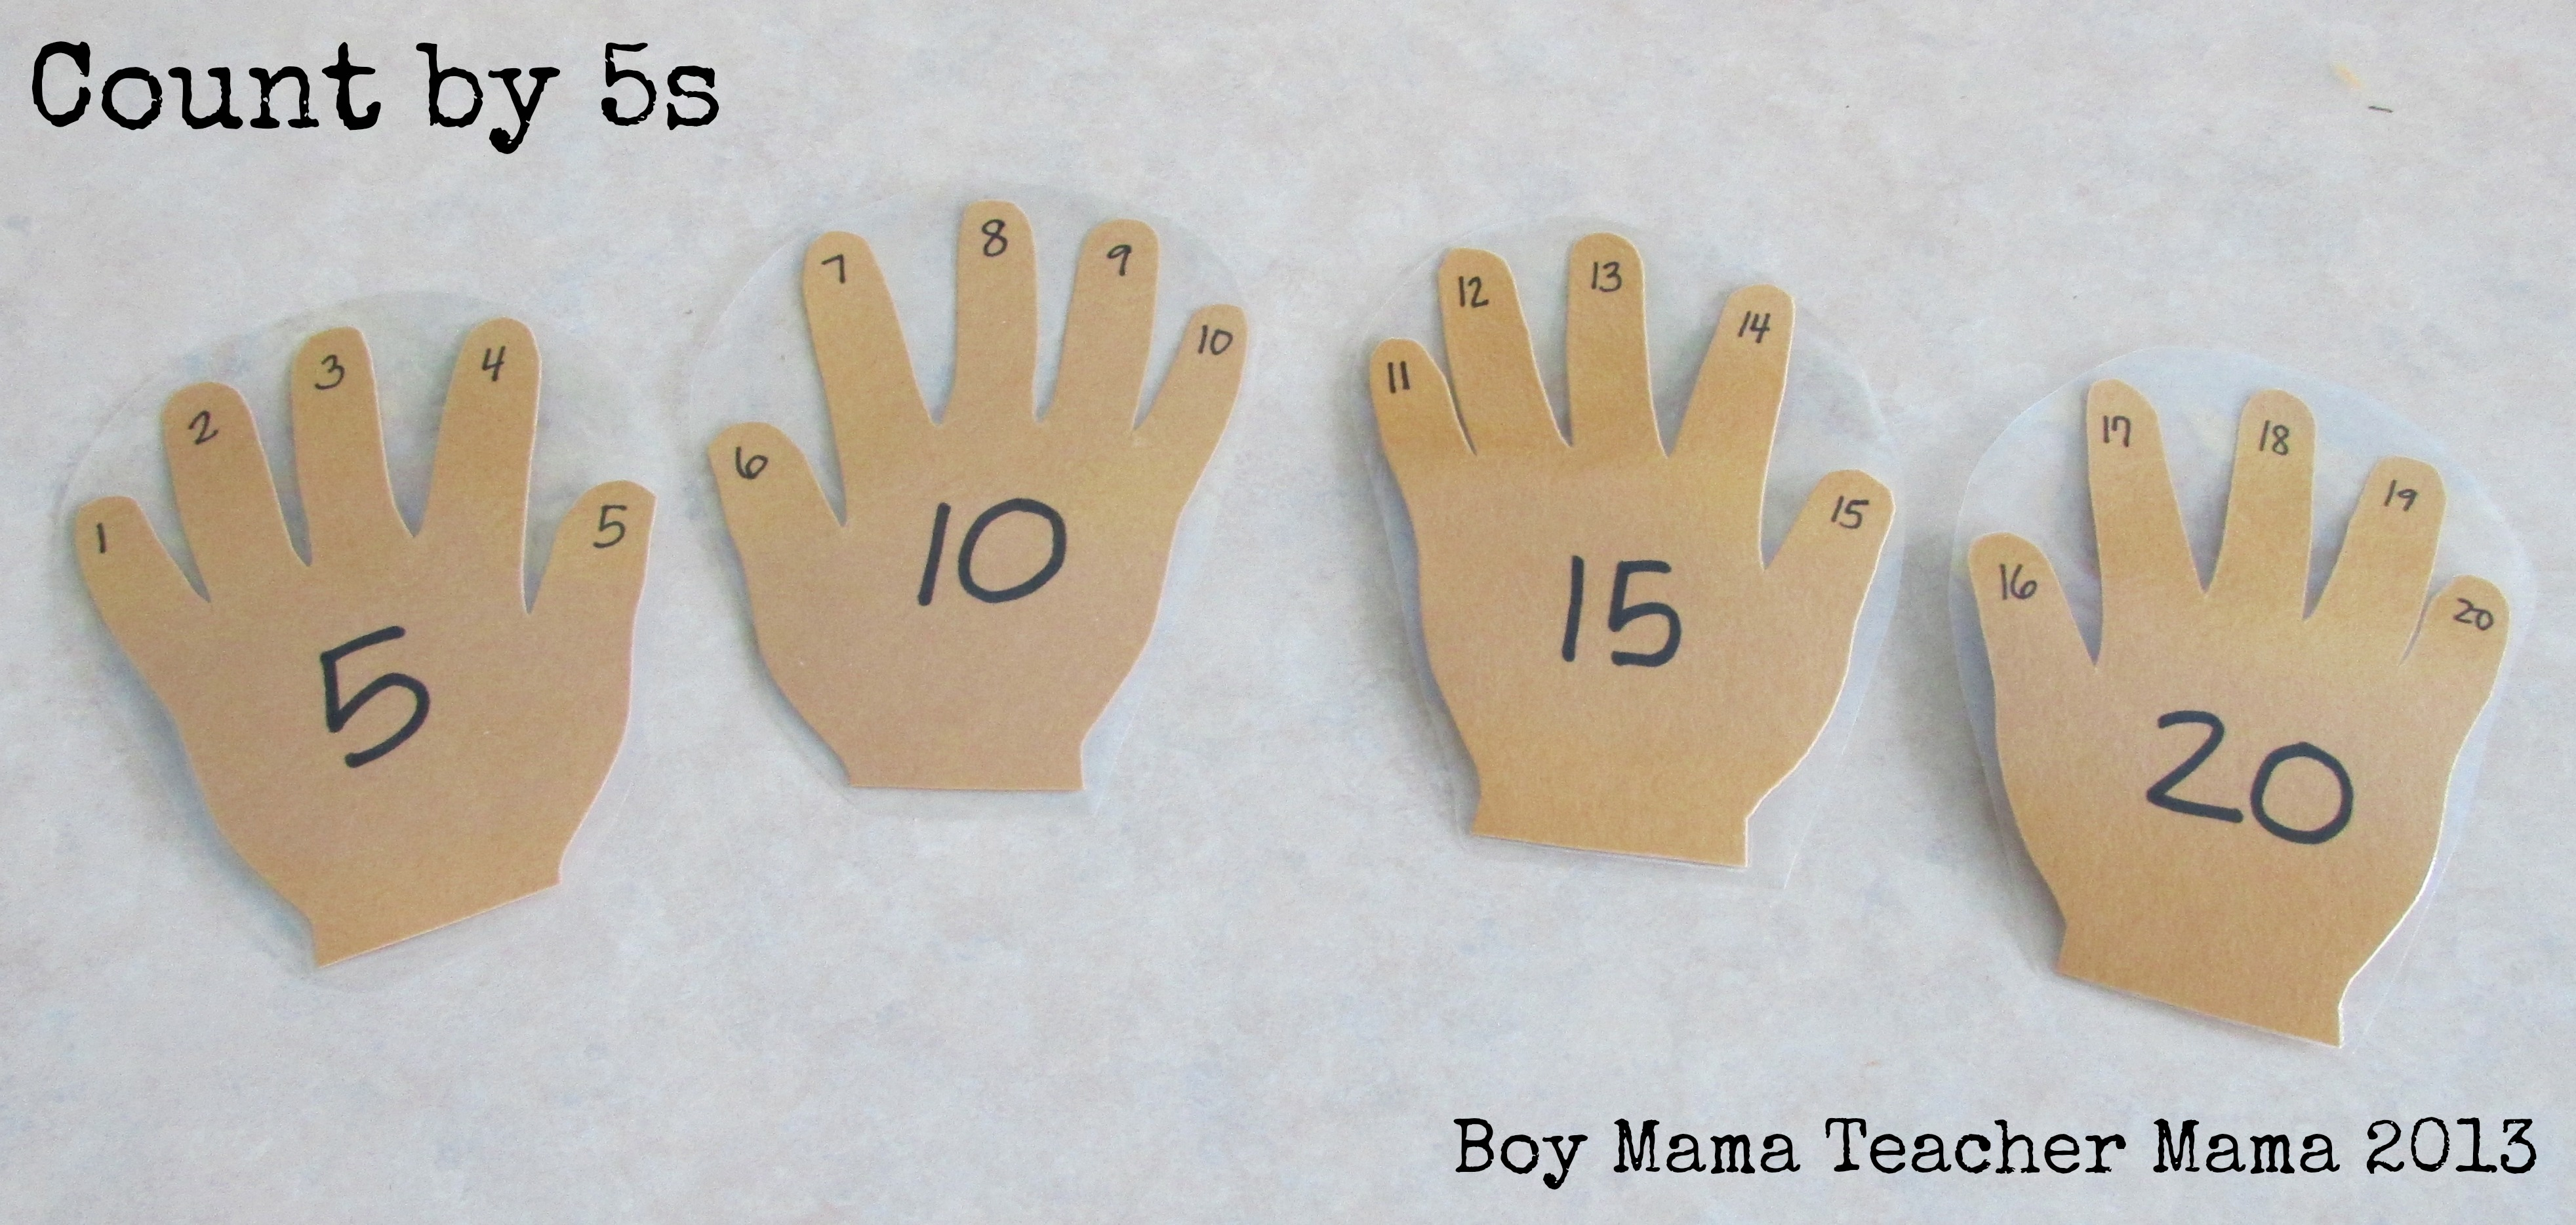 ... the counts by 5s on the palms and the counting numbers on the fingers